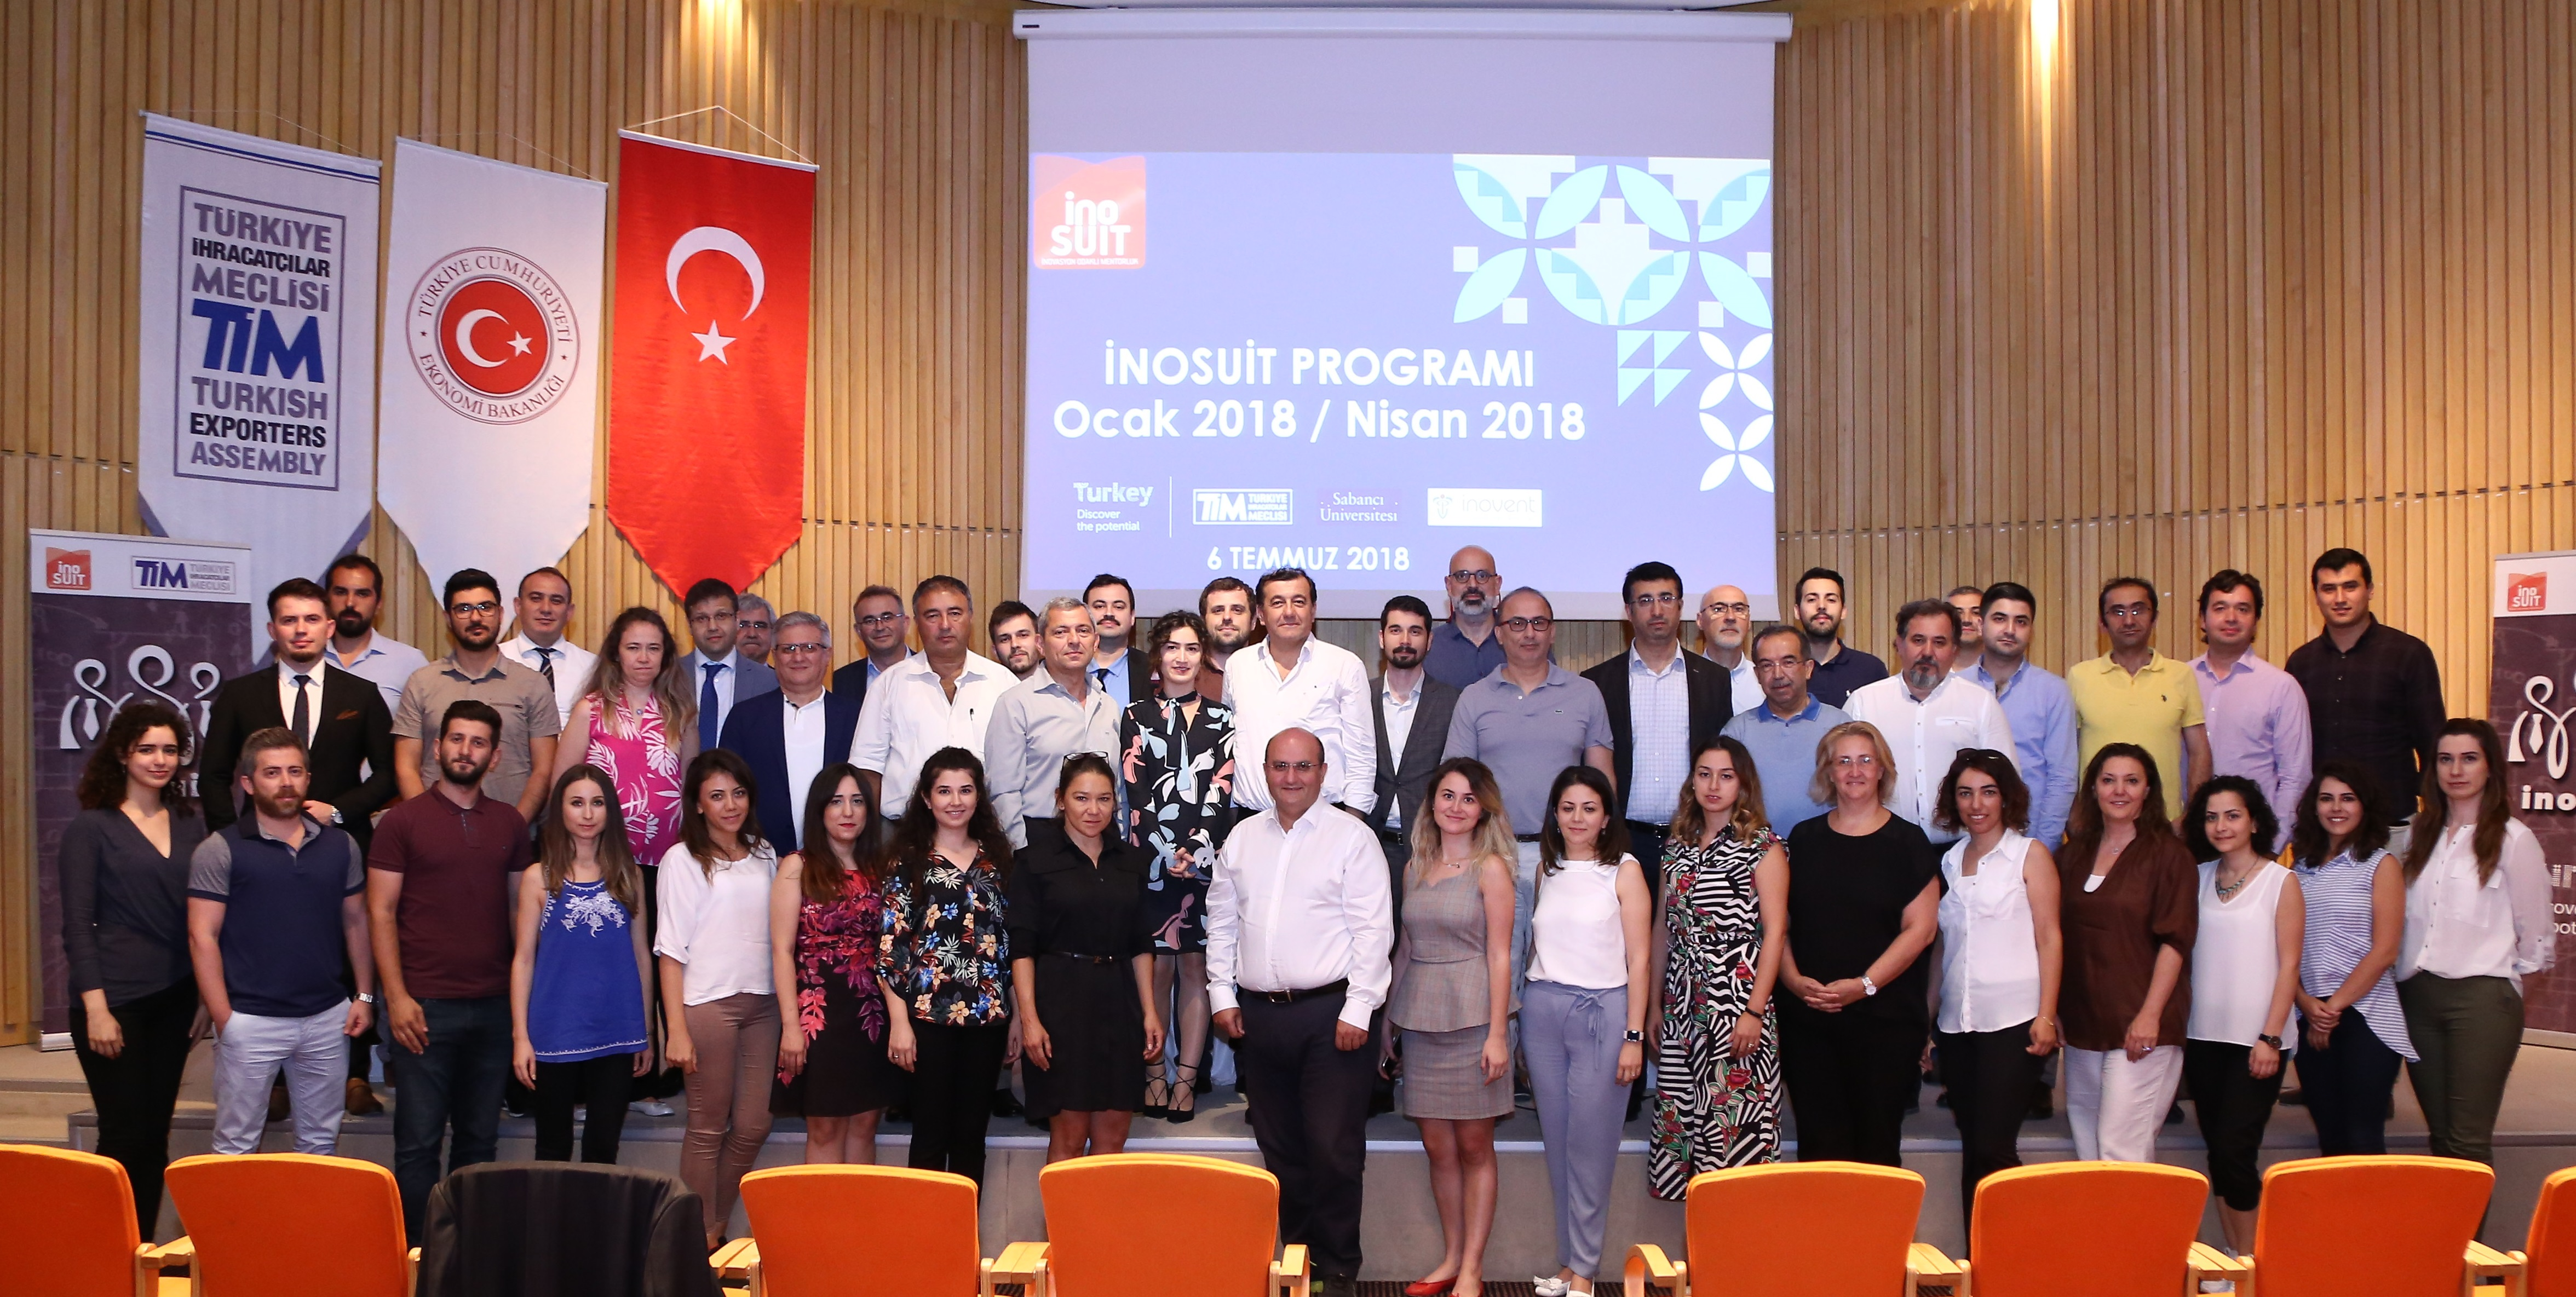 InoSuit - Innovation Focused Mentorship Program Knowledge and Experience Sharing Gathering was Held at TİM